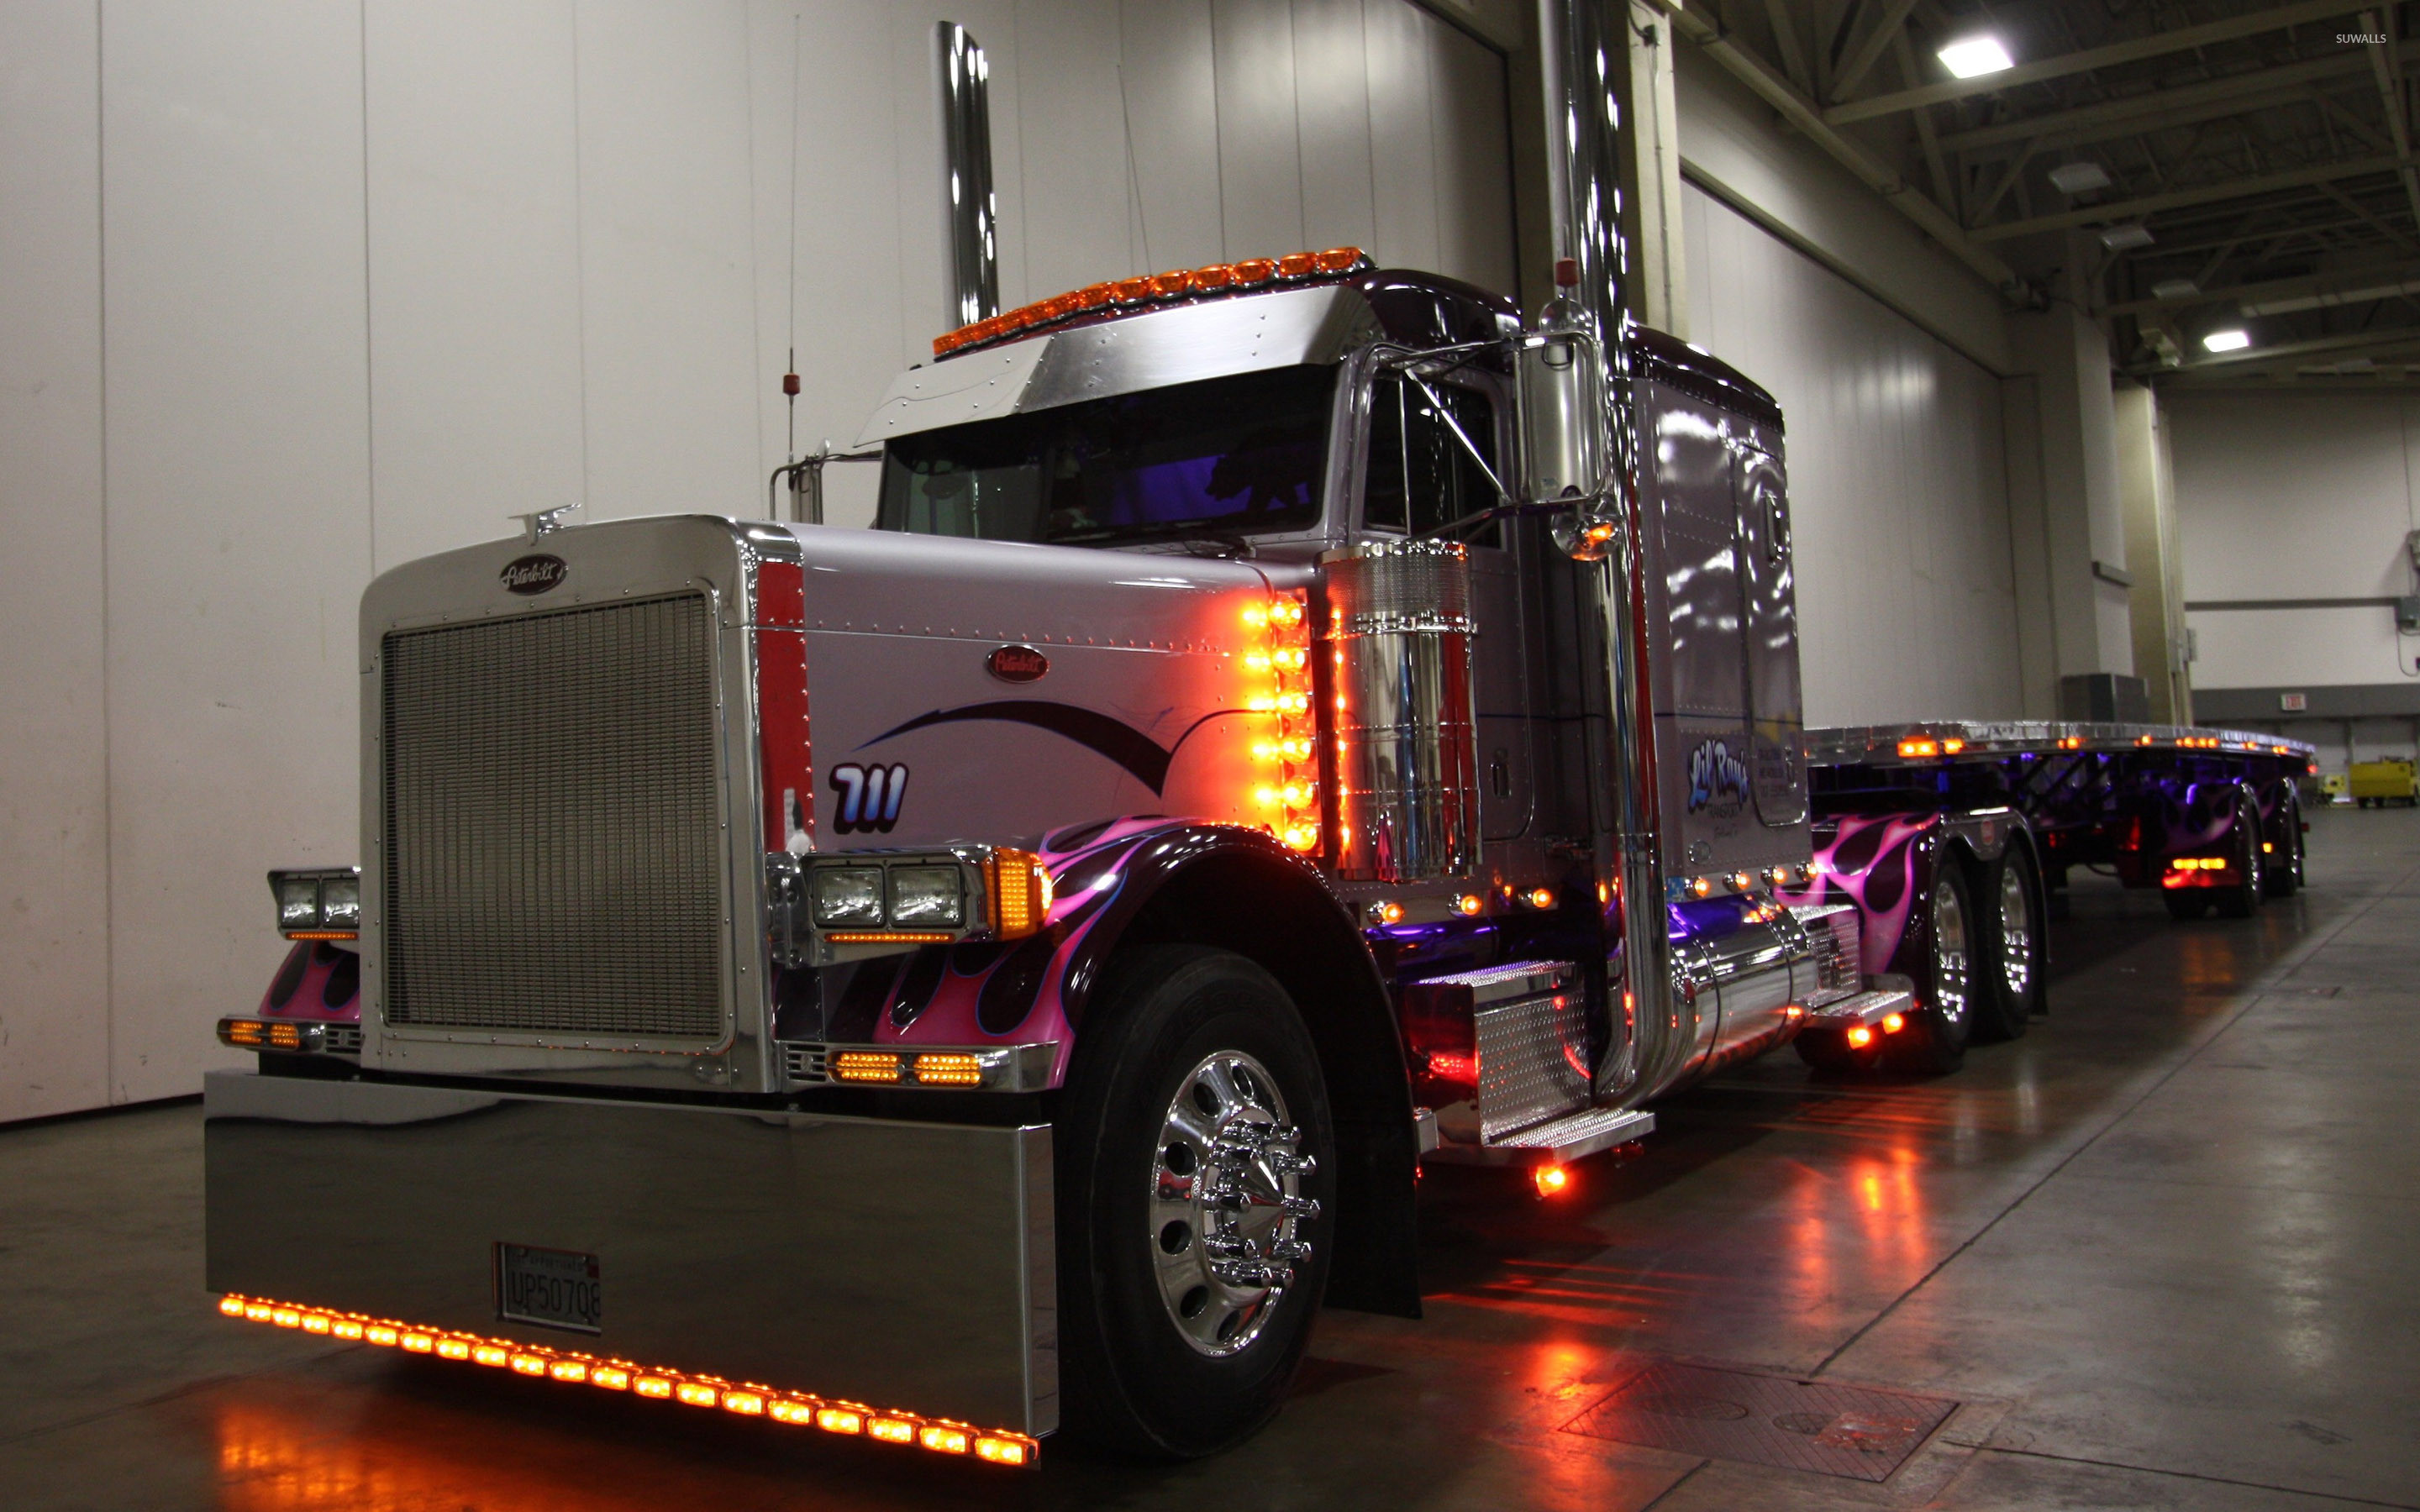 2880x1800 Peterbilt truck [2] wallpaper